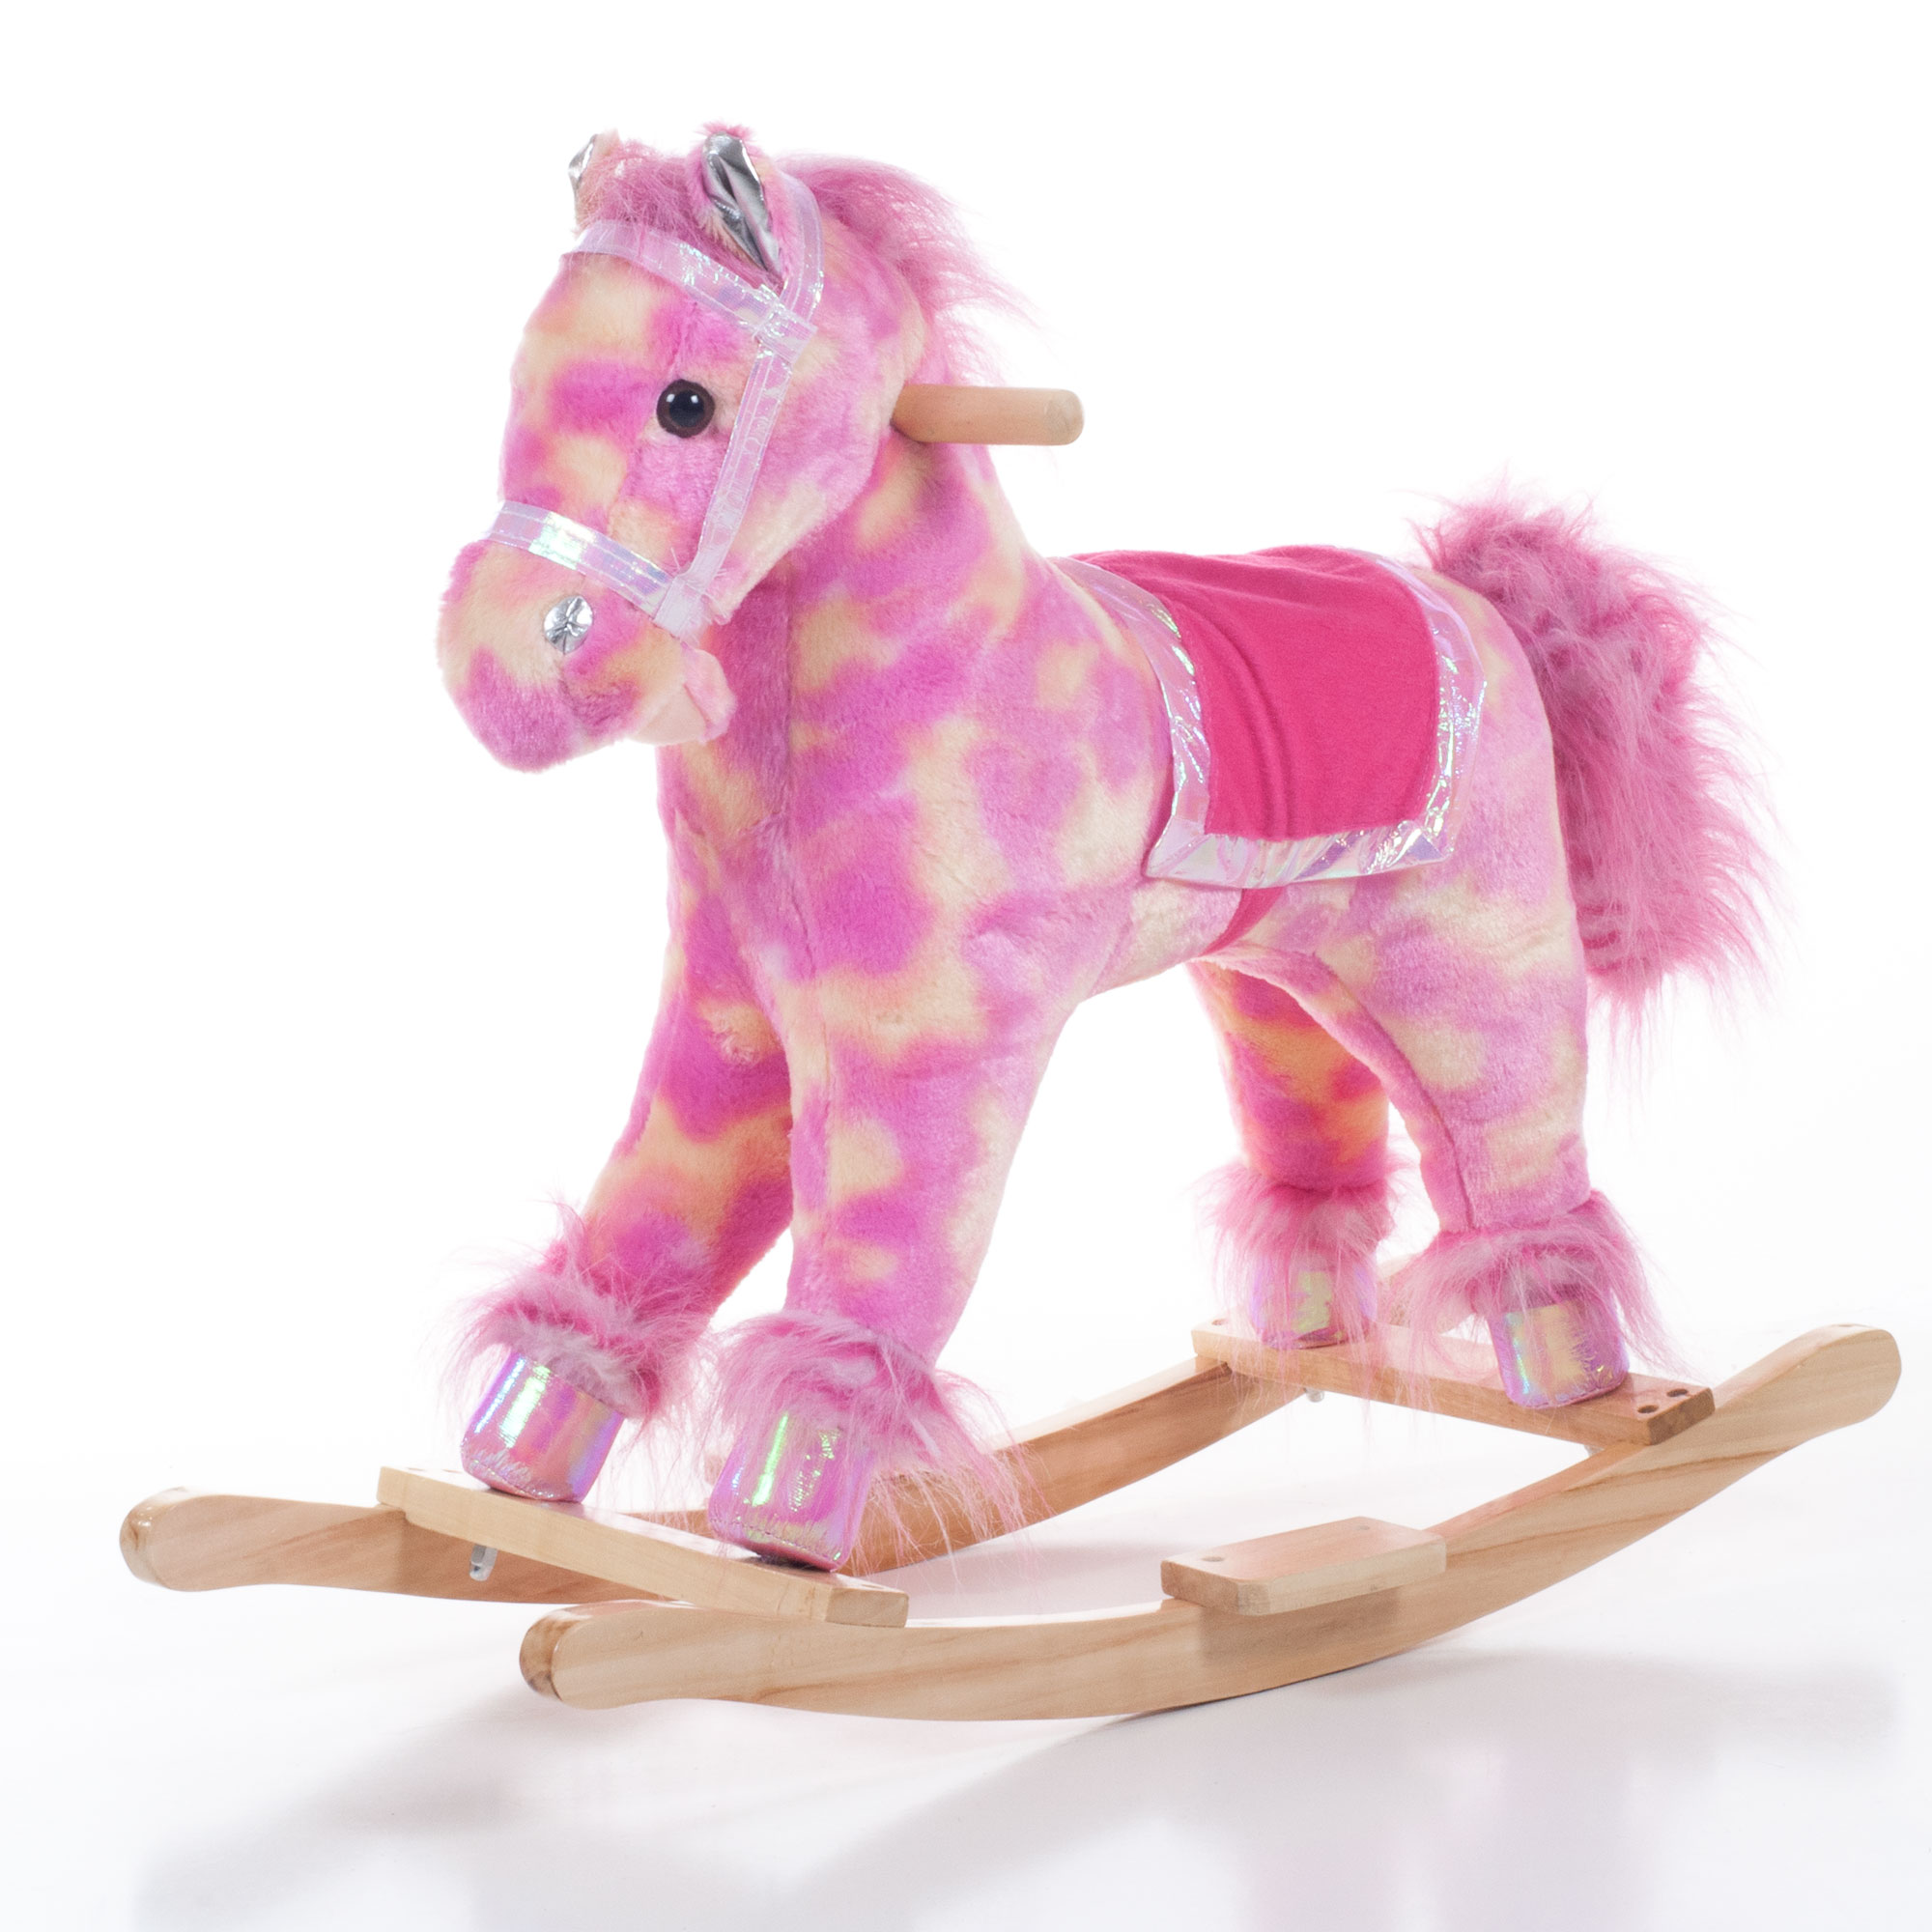 Pink Plush Pony Rocking Horse Ride On Toy by Happy Trails